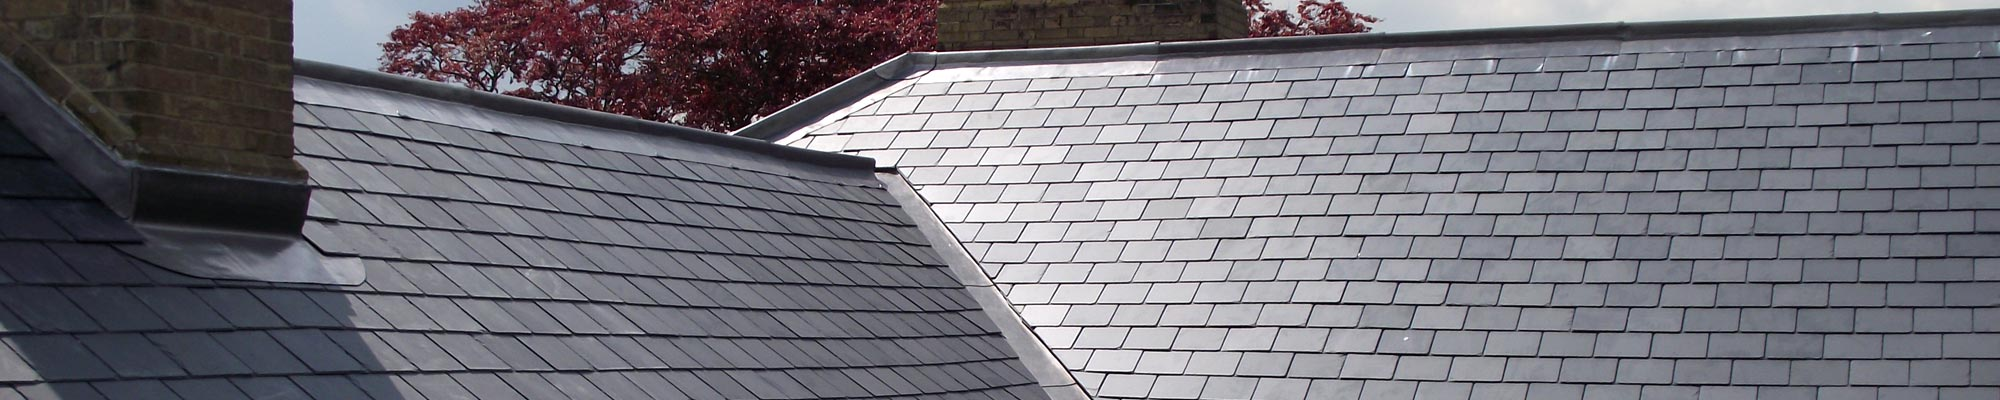 Pitched roofing services with slate tiles from Proctor Roofing